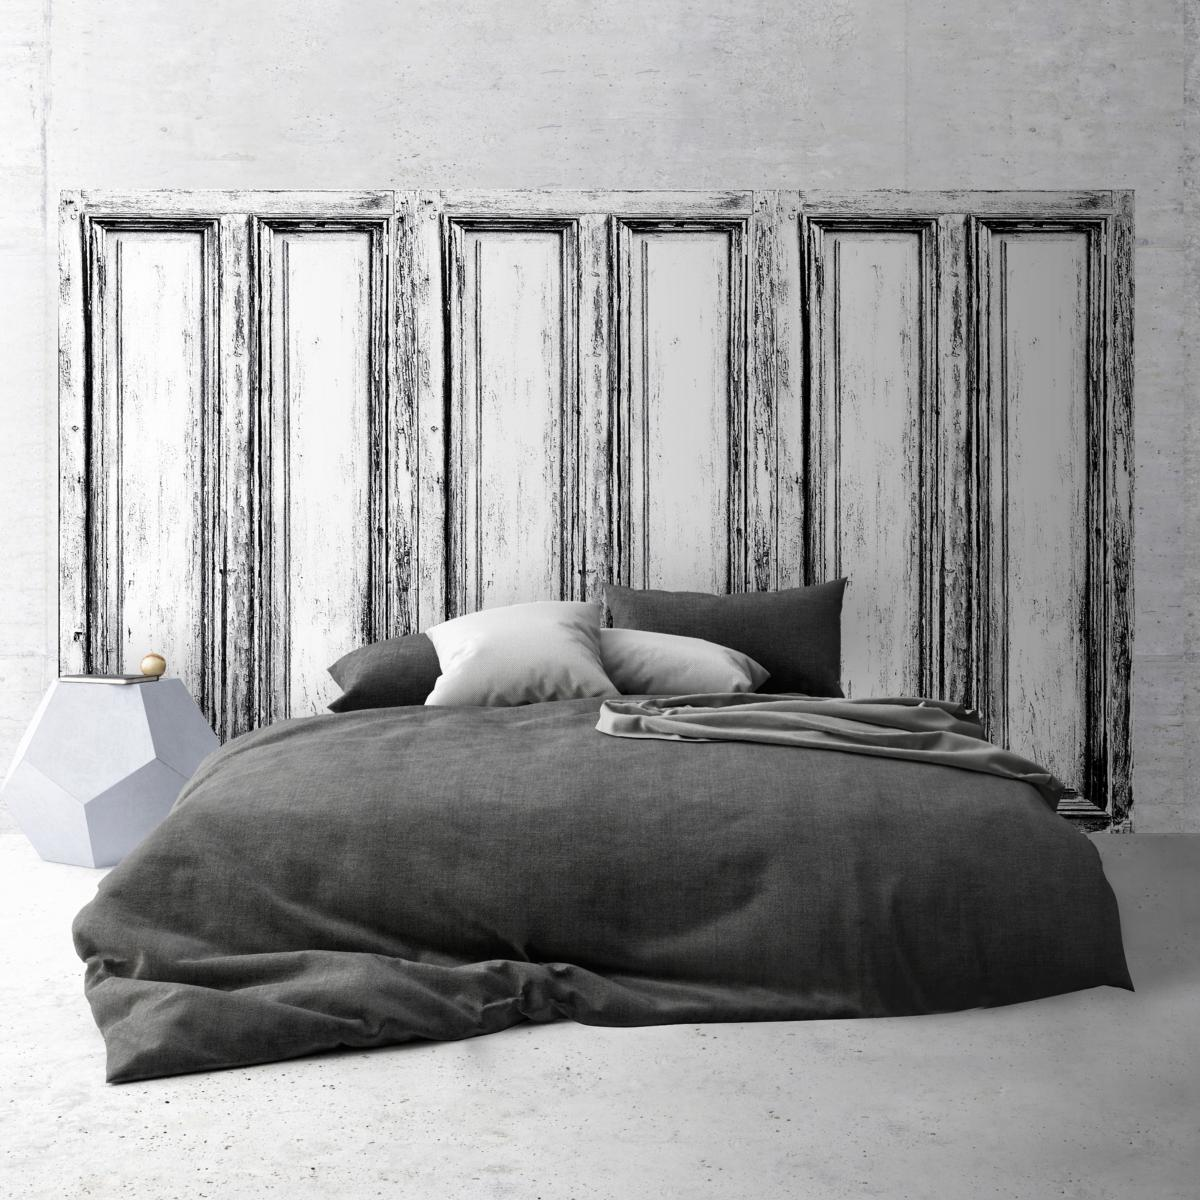 t te de lit effet de mati re panneau en bois noir et blanc. Black Bedroom Furniture Sets. Home Design Ideas